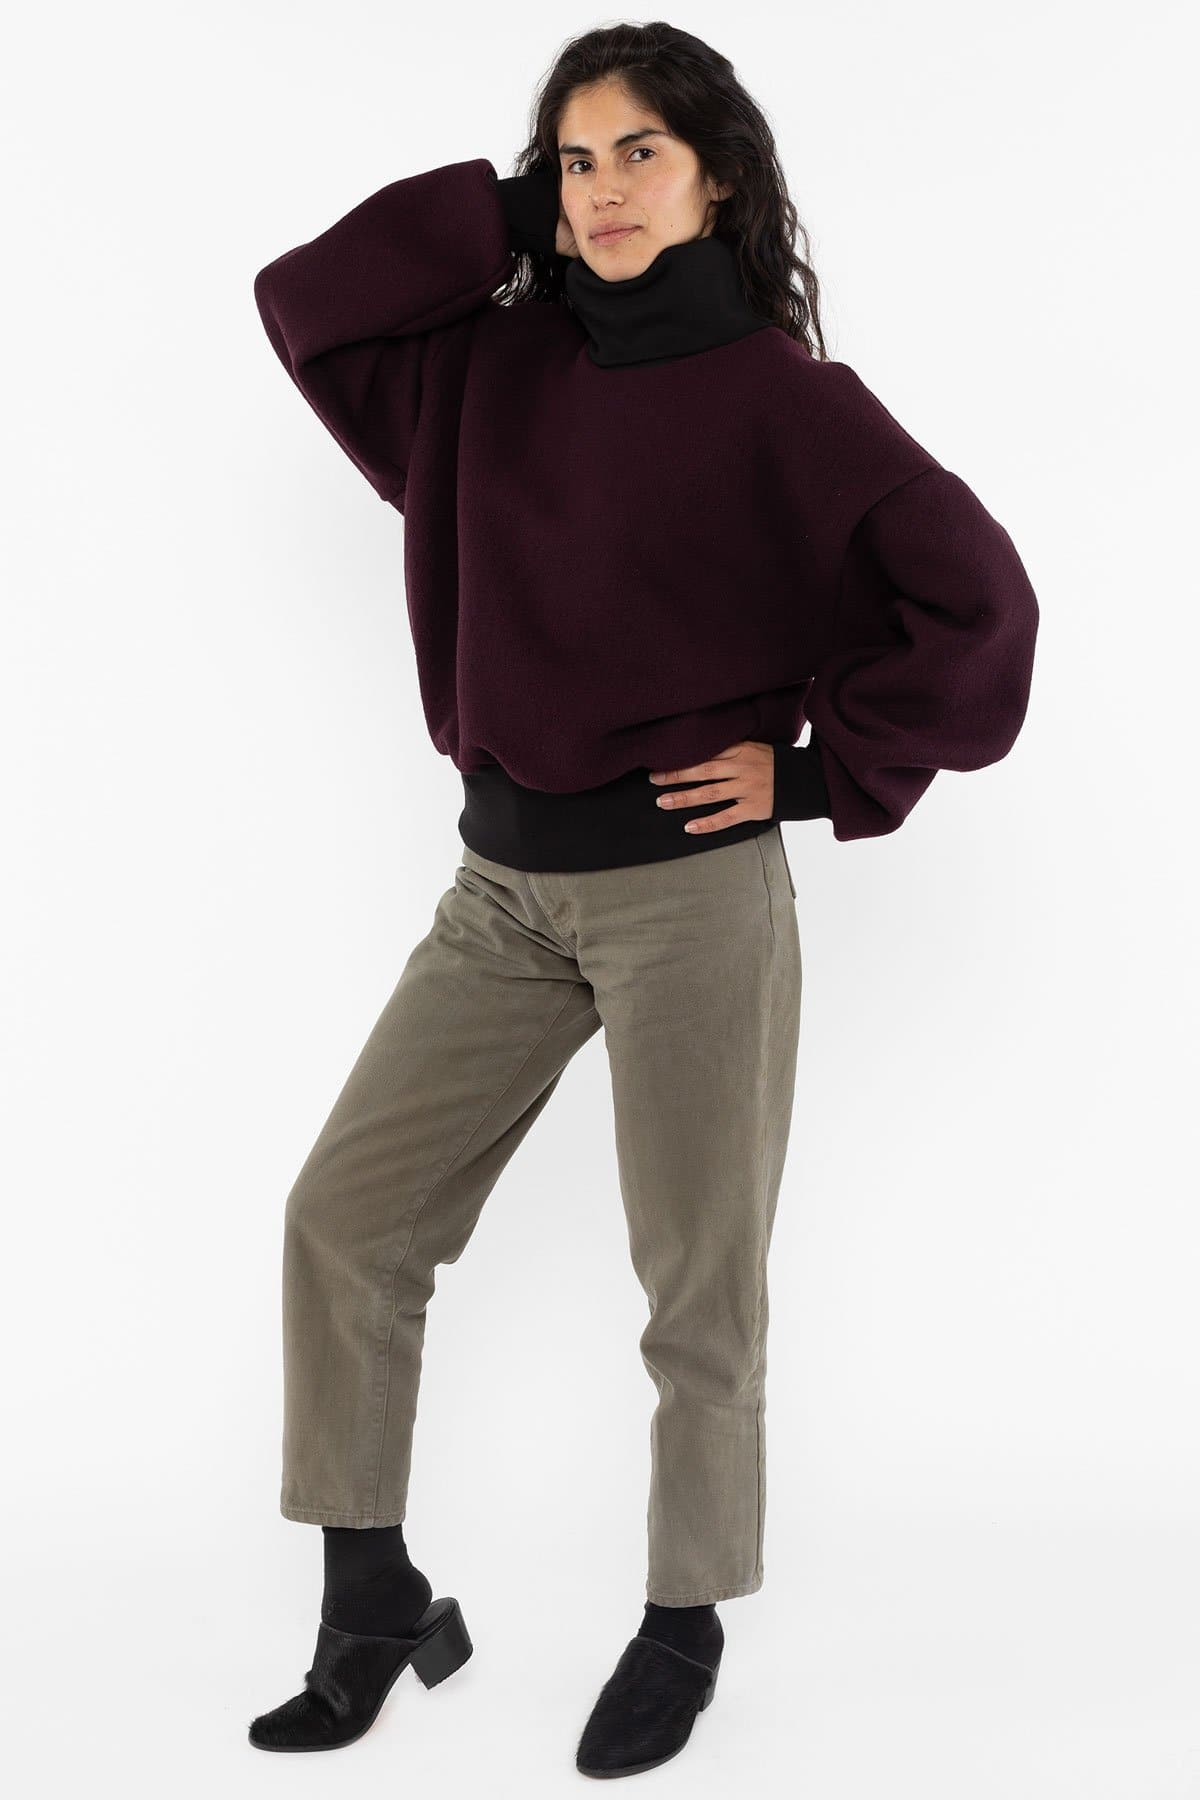 RWHR313 - Wool Turtleneck Sweater with Heavy Cotton Rib